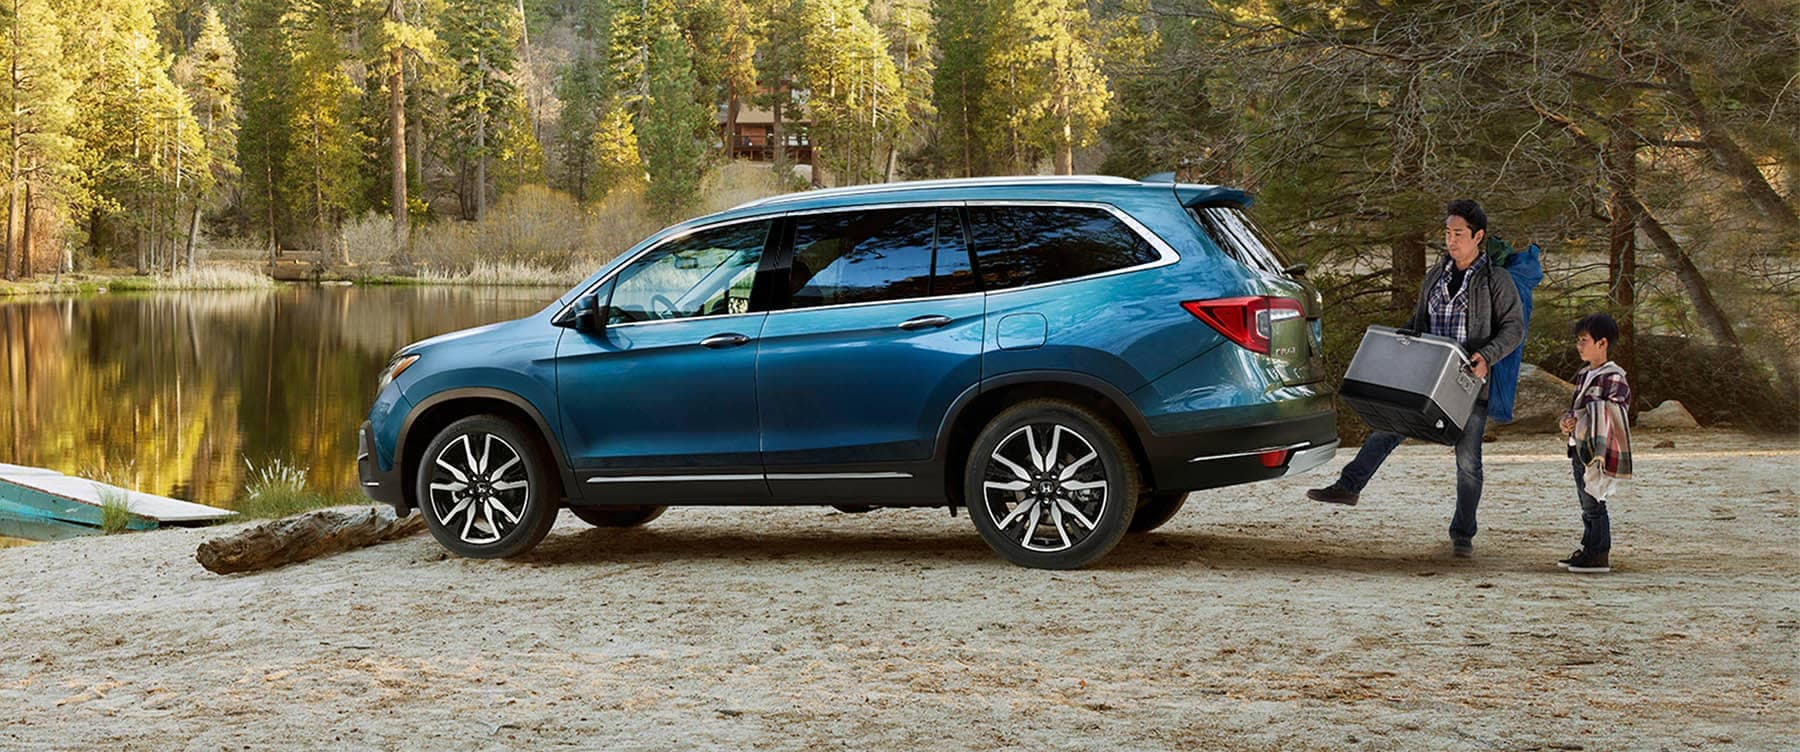 2019 Honda Pilot Parked at lake with handsfree tailgate banner